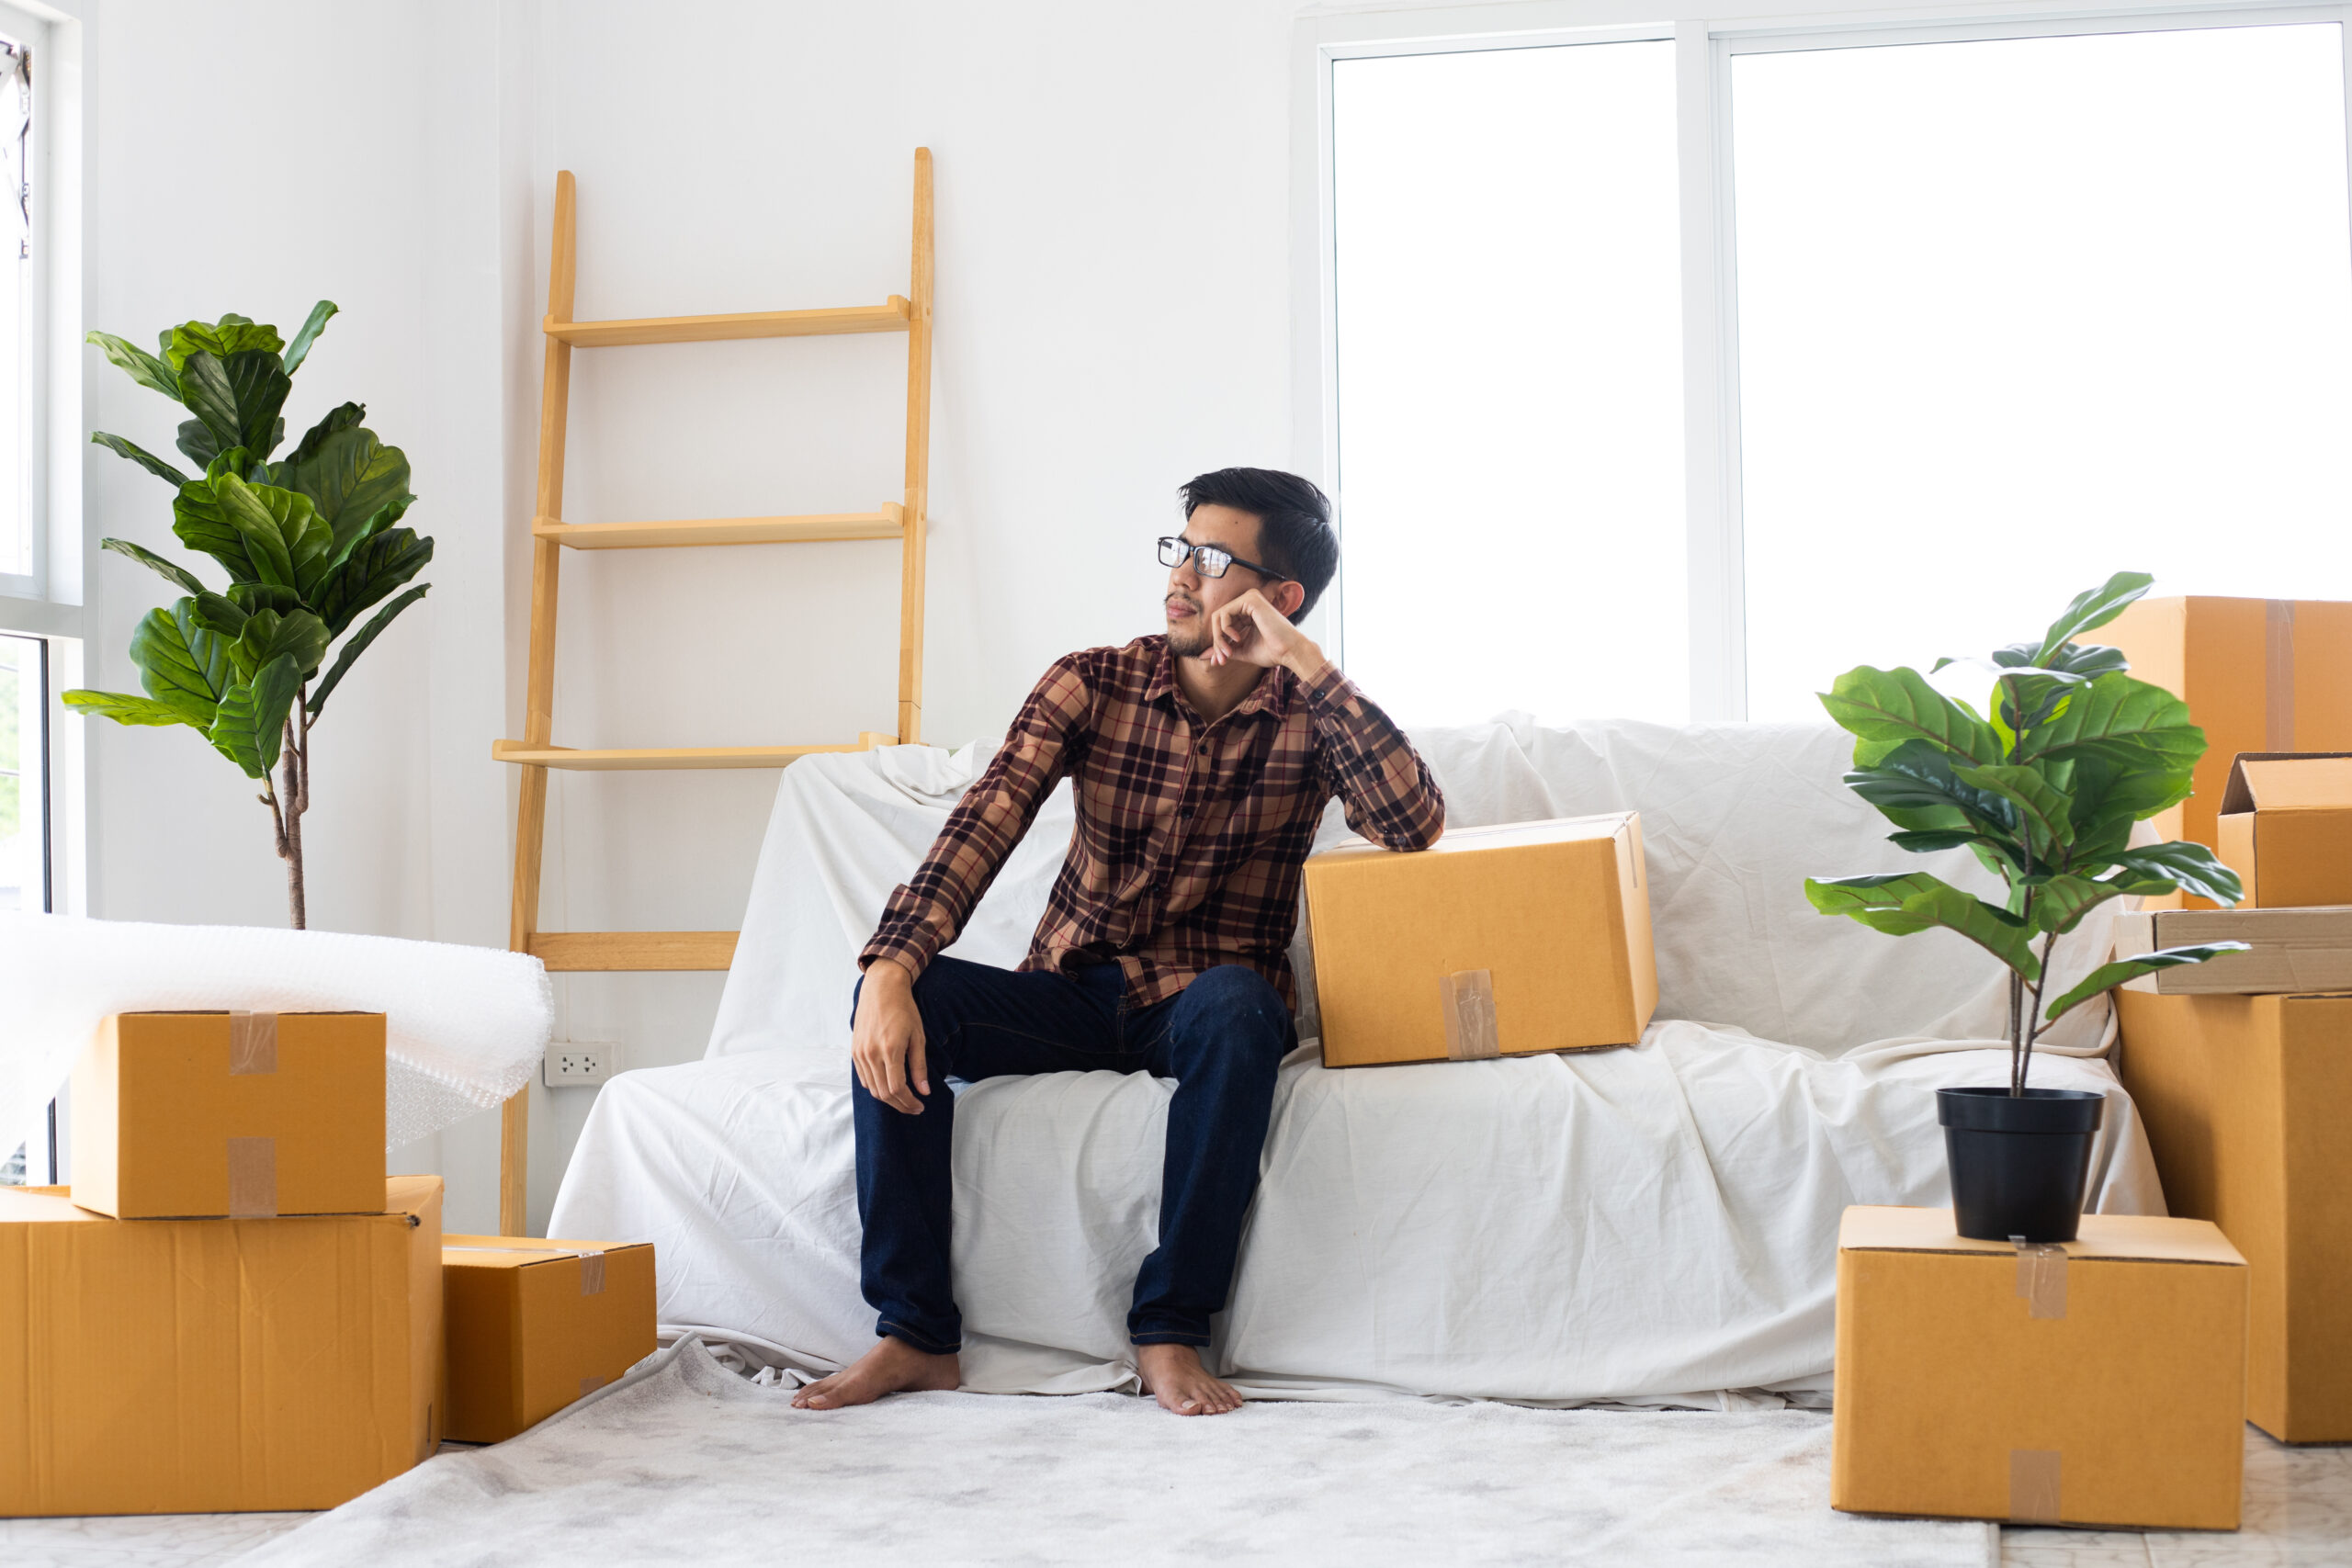 Man Sitting in Room of Moving Boxes